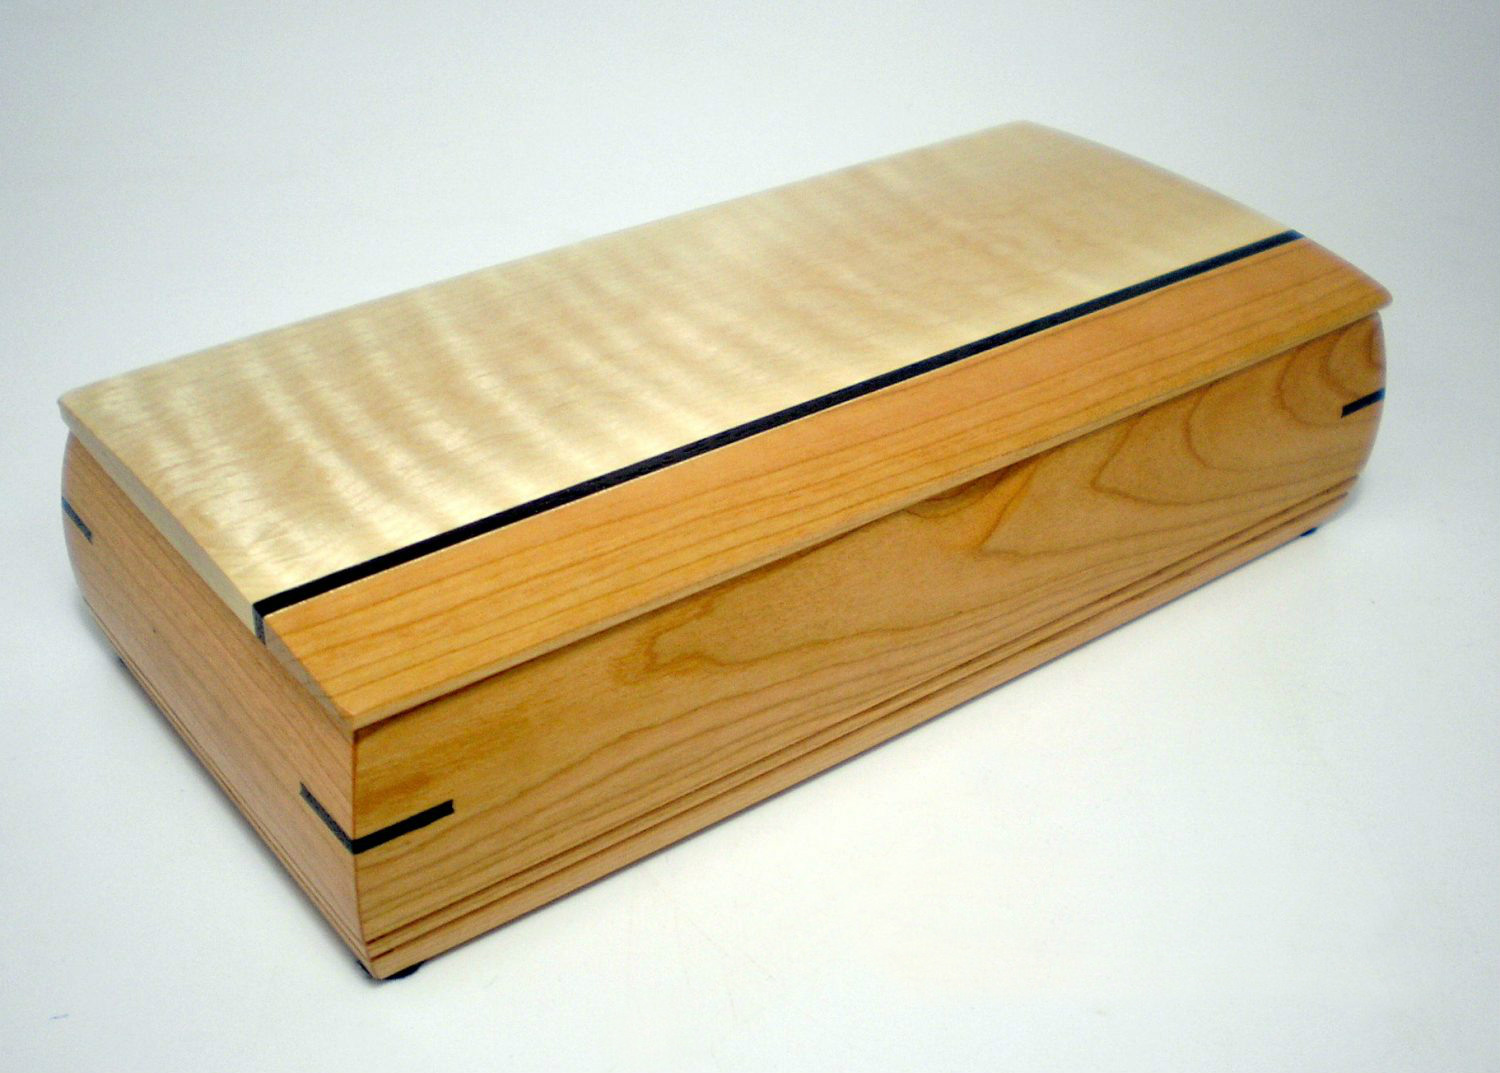 TV Remote Box in Cherry